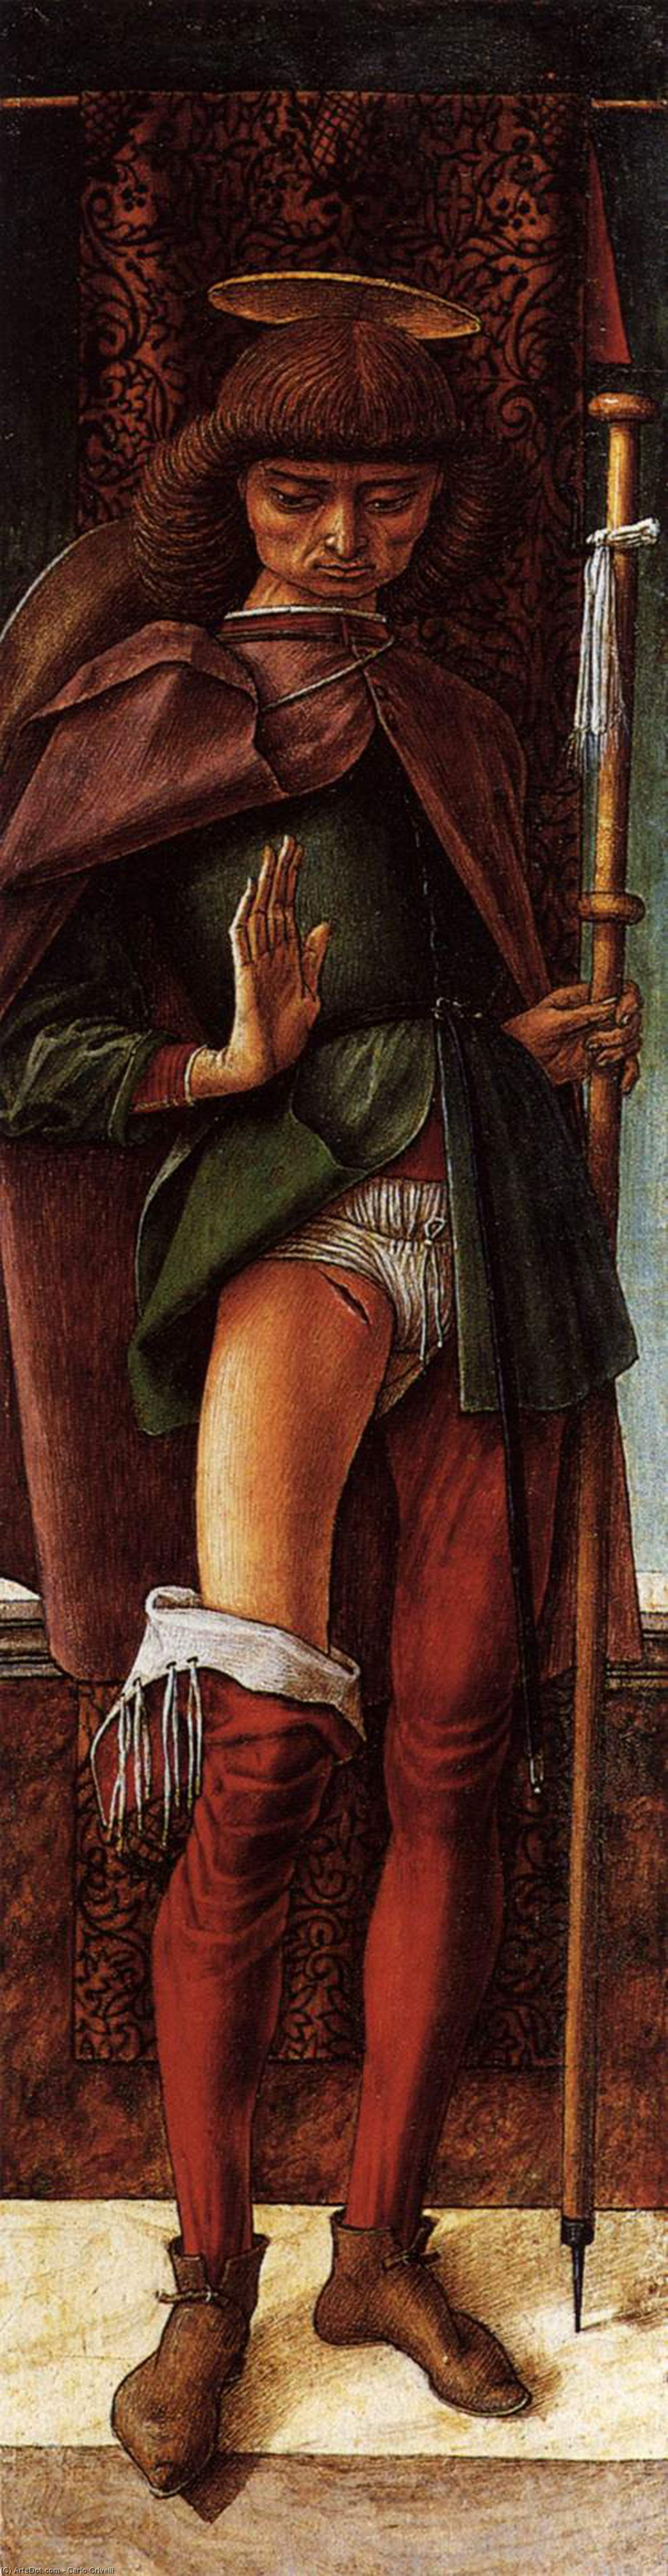 Wikioo.org - The Encyclopedia of Fine Arts - Painting, Artwork by Carlo Crivelli - St Roch